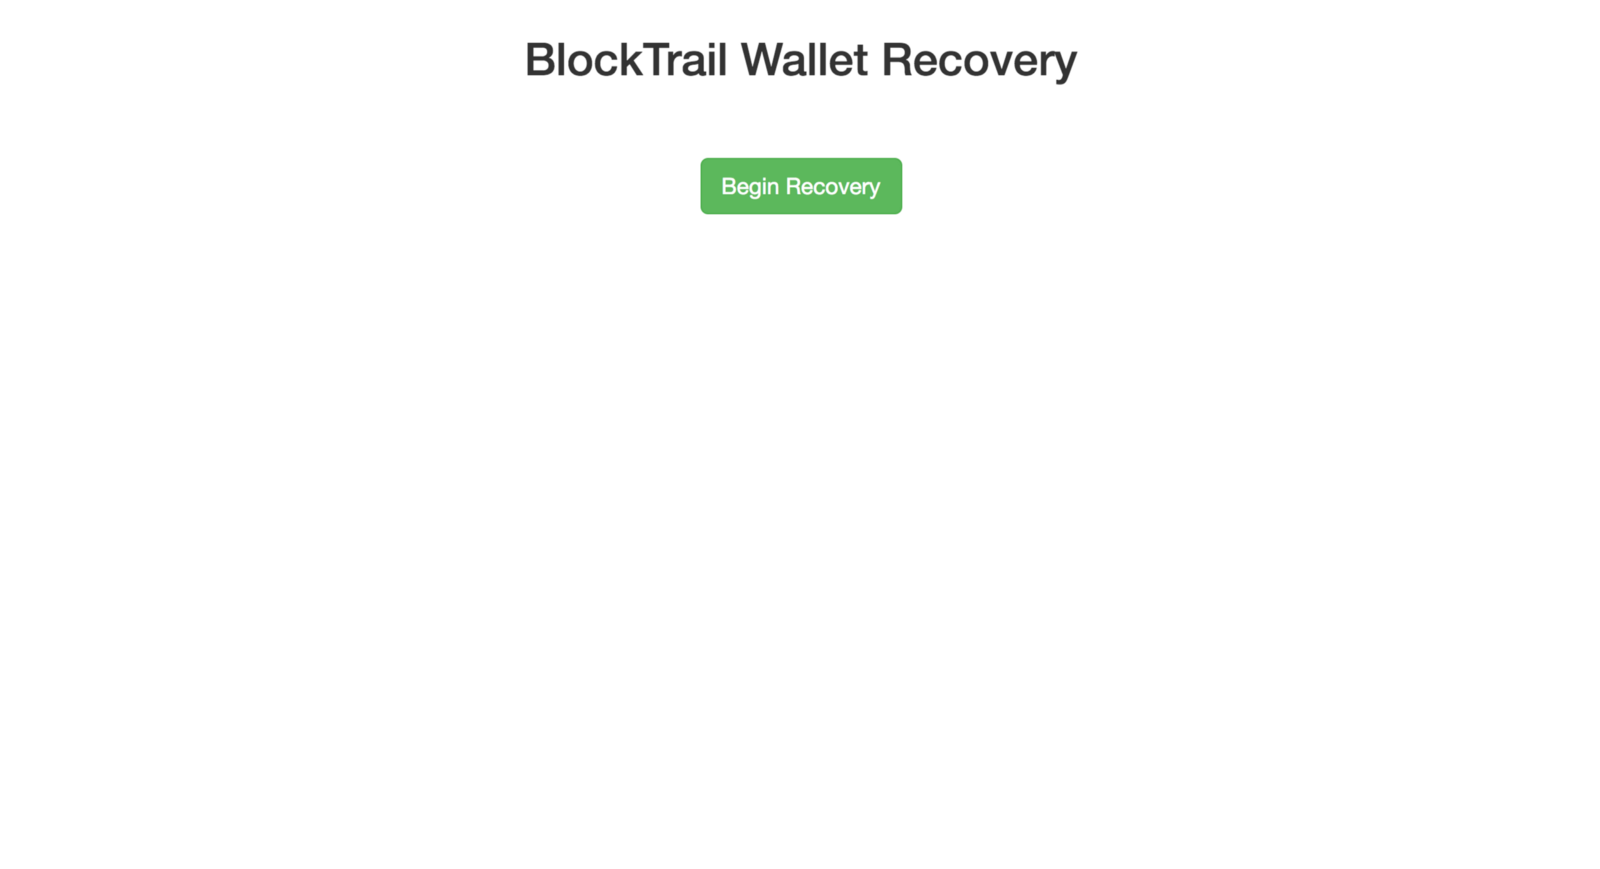 recover your wallet quick and easy the btc blog rh blog btc com yMail Mail Inbox yMail Mail Inbox